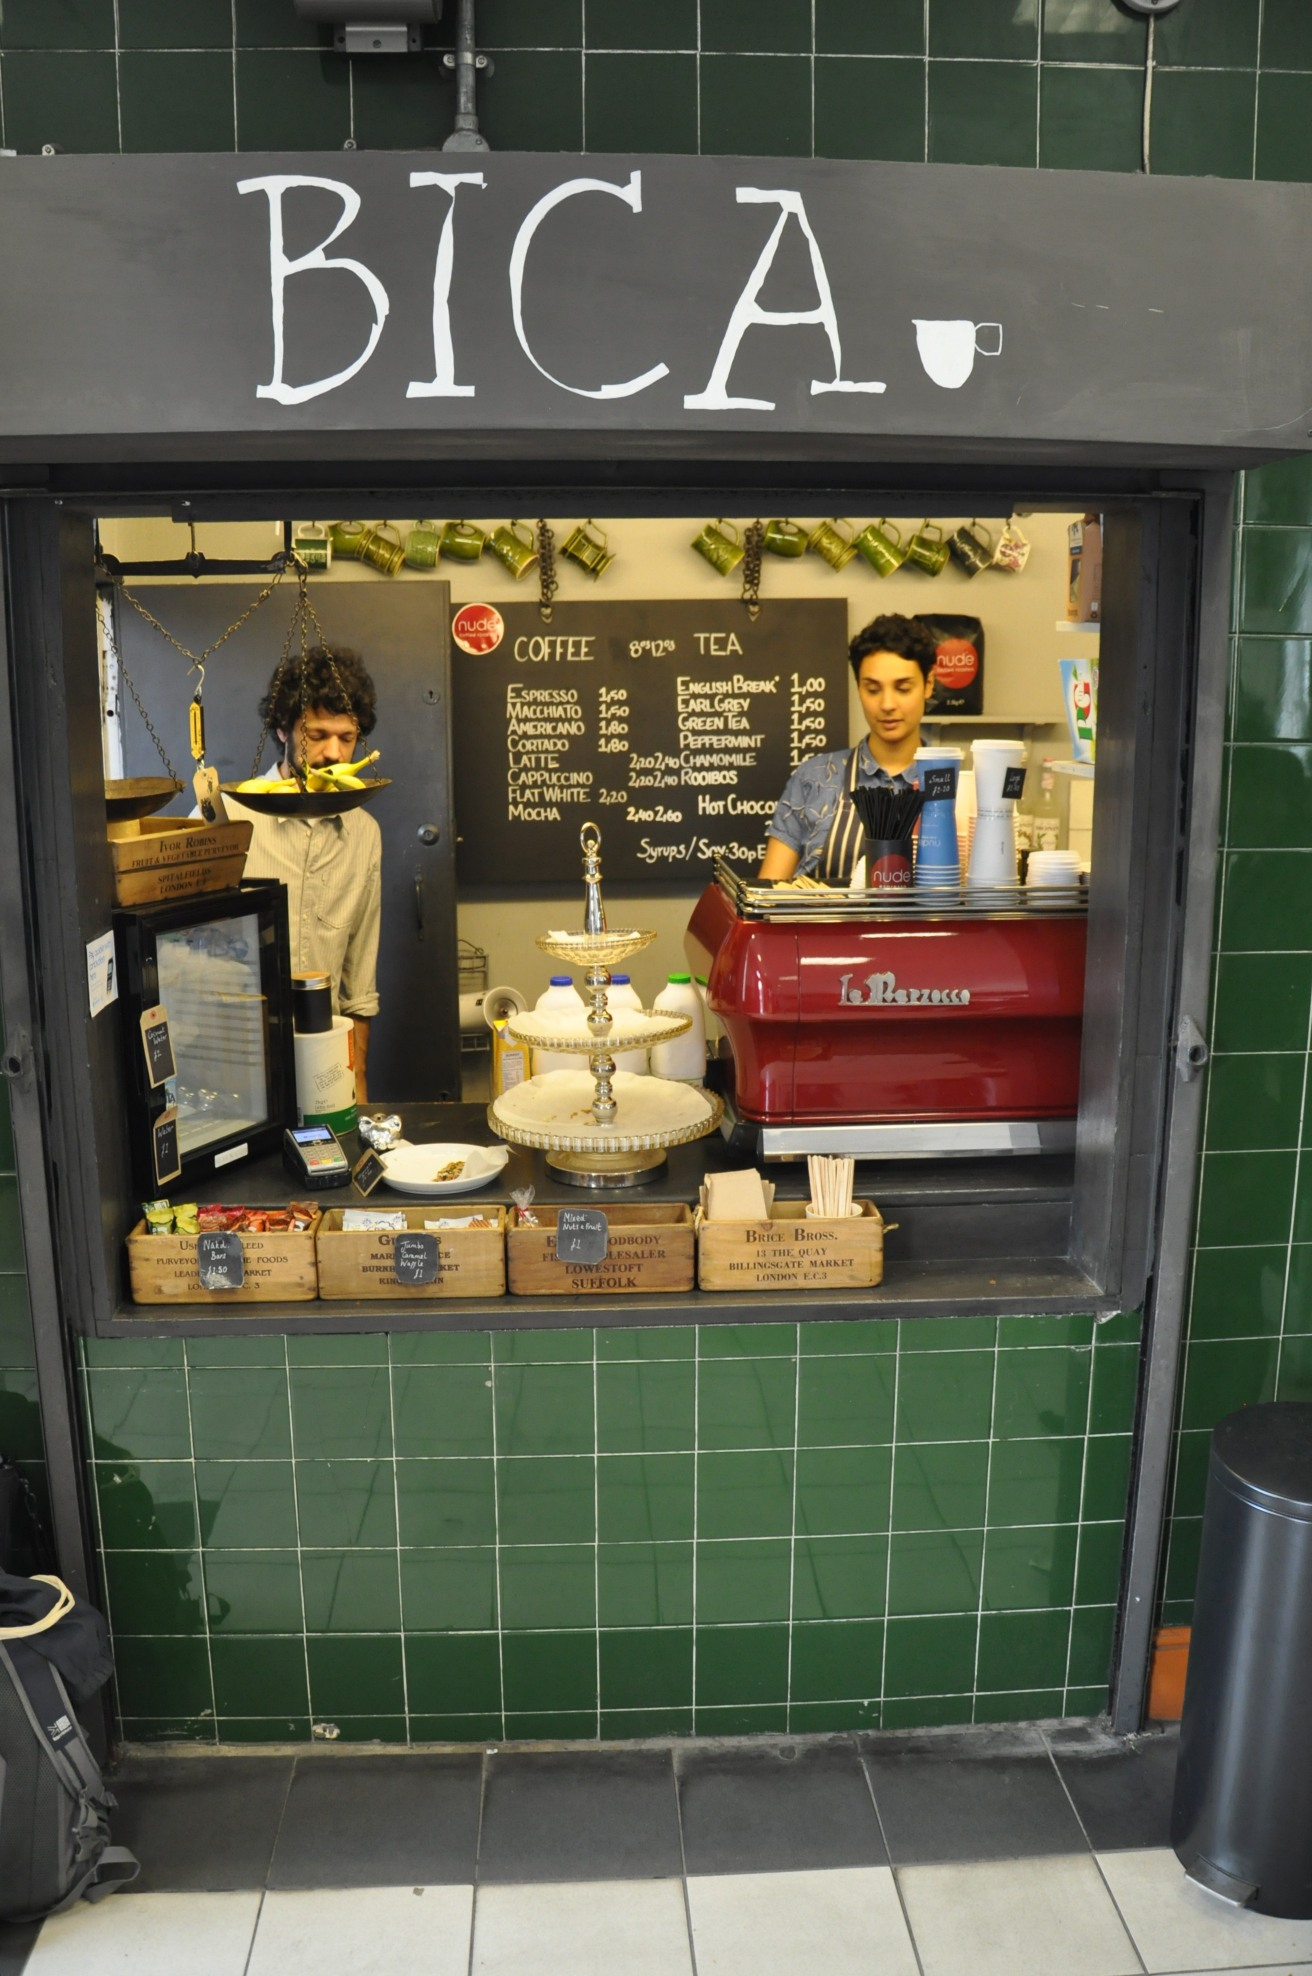 Bica, at Westbourne Park Station. A small serving hatch surrounding by green tiles.